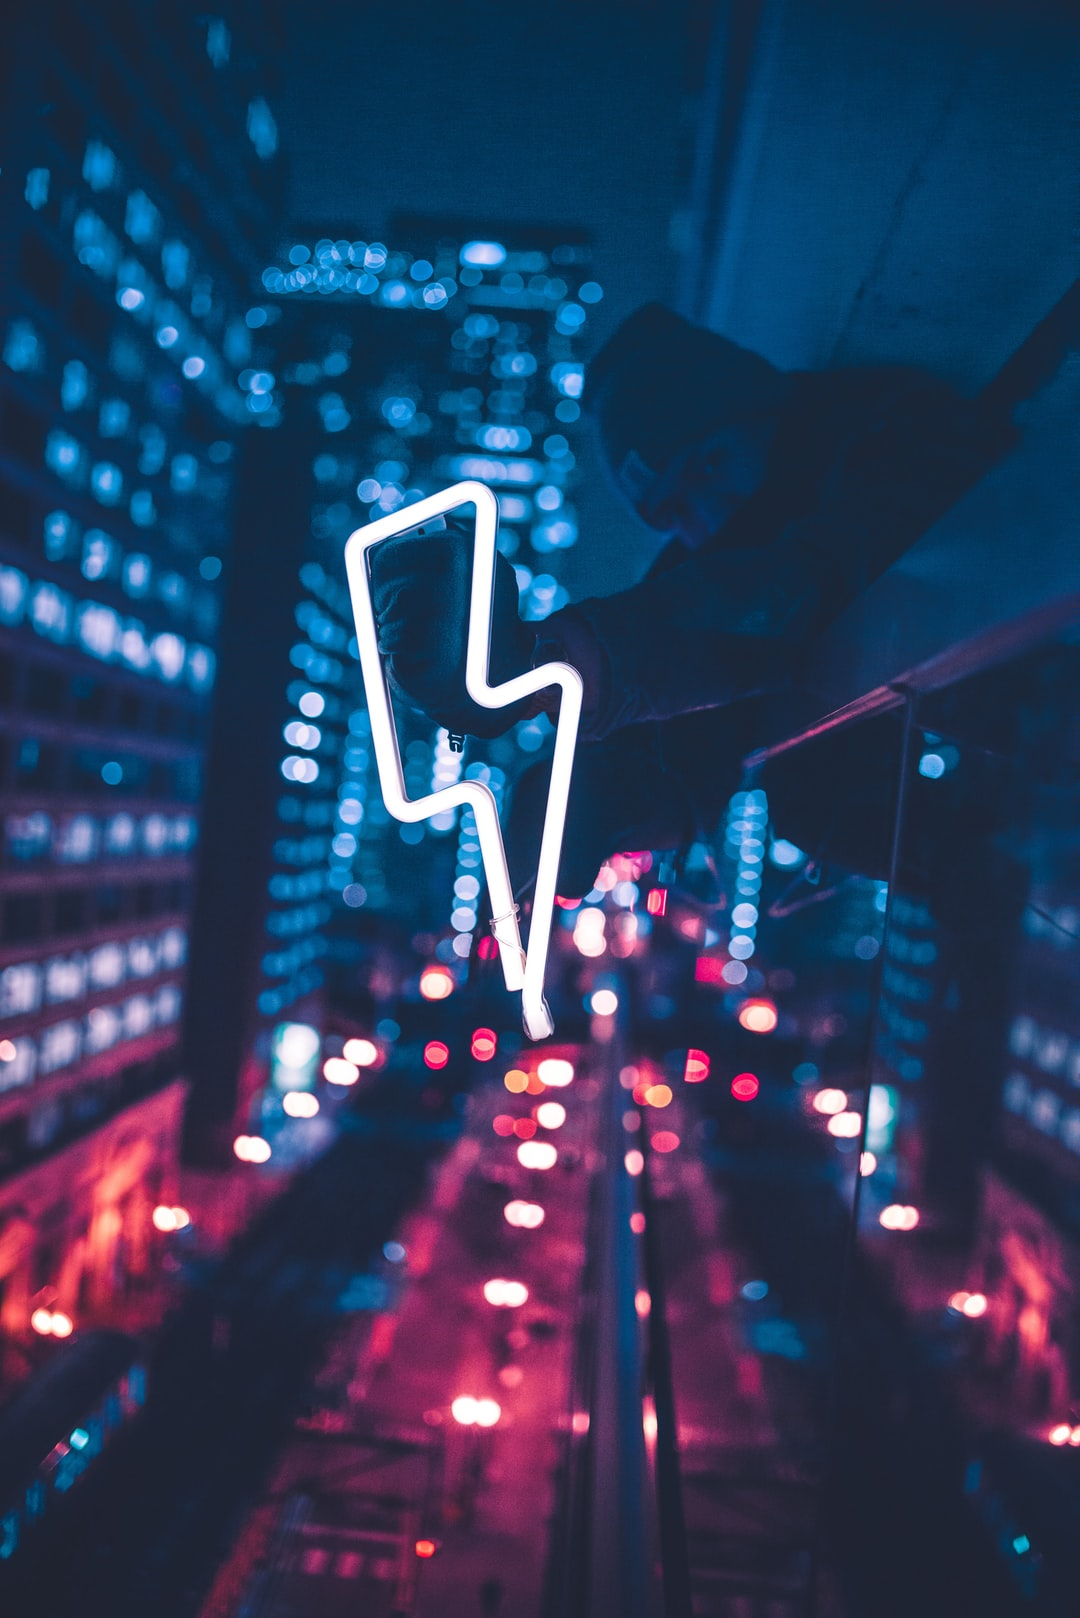 500 Power Pictures Hd Download Free Images On Unsplash